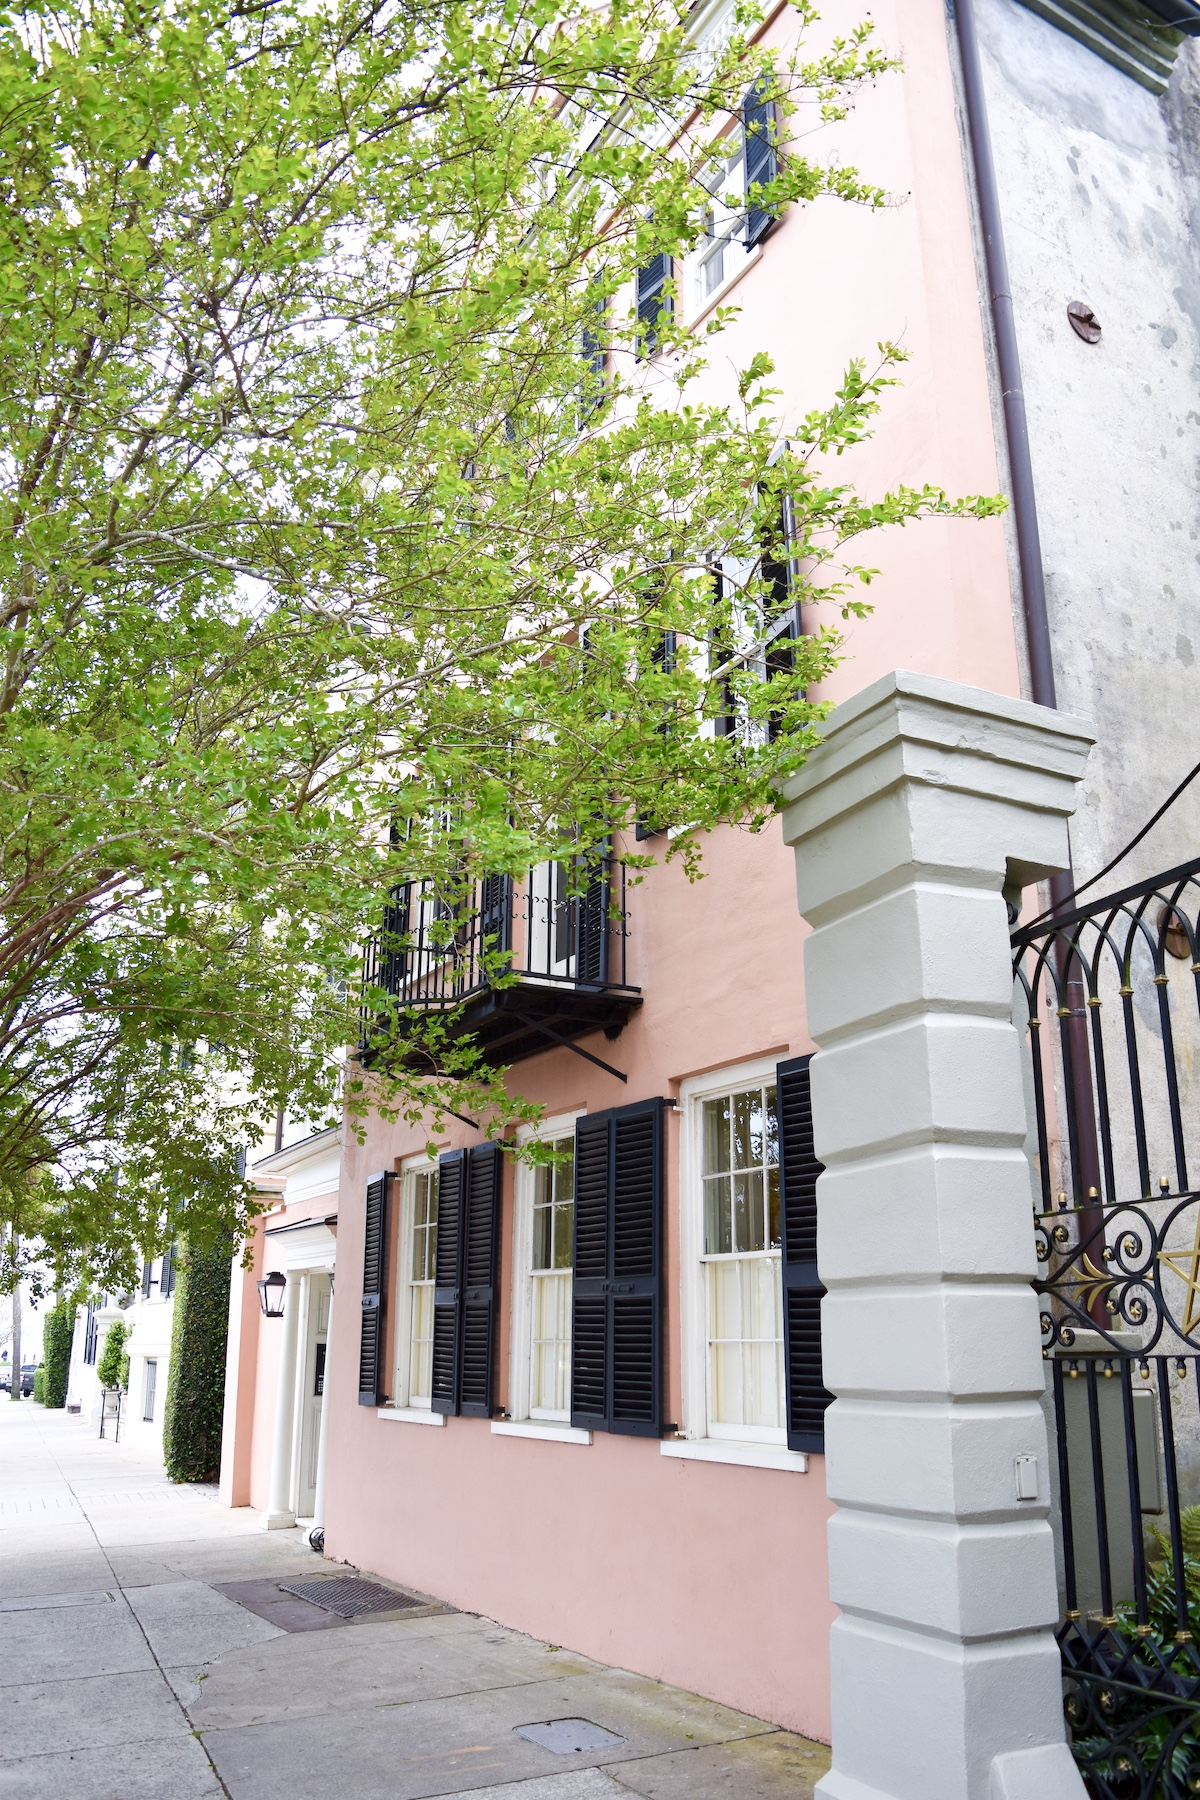 47 E Bay Street, Charleston, SC Coral House Pink House 9